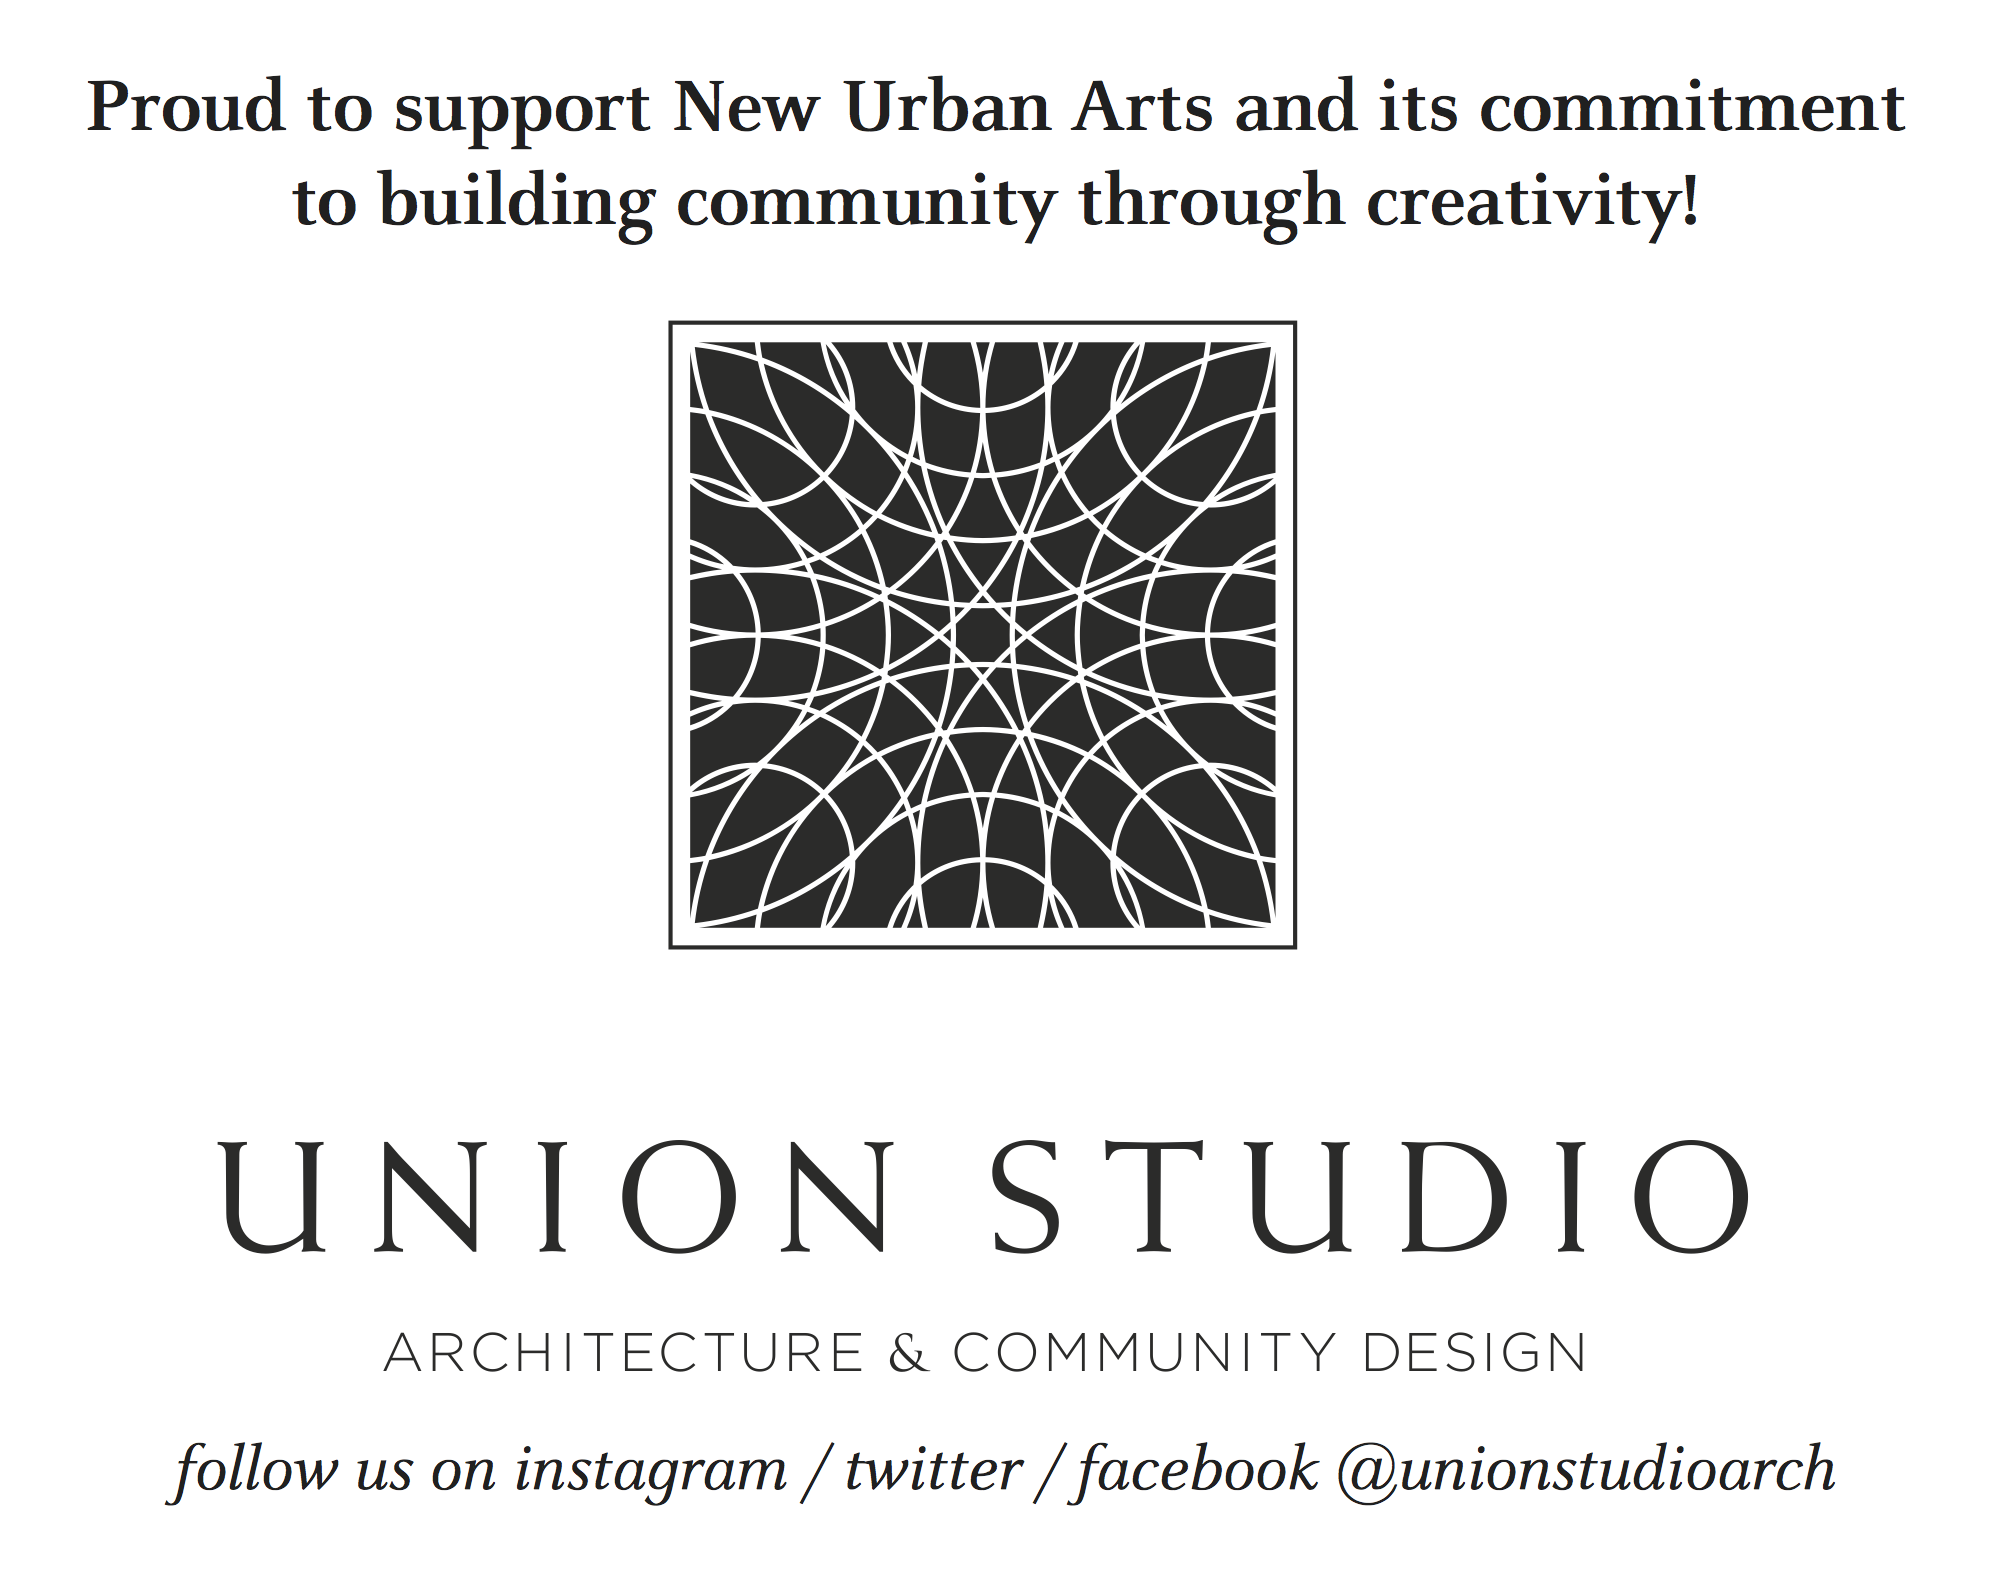 About New Urban Arts